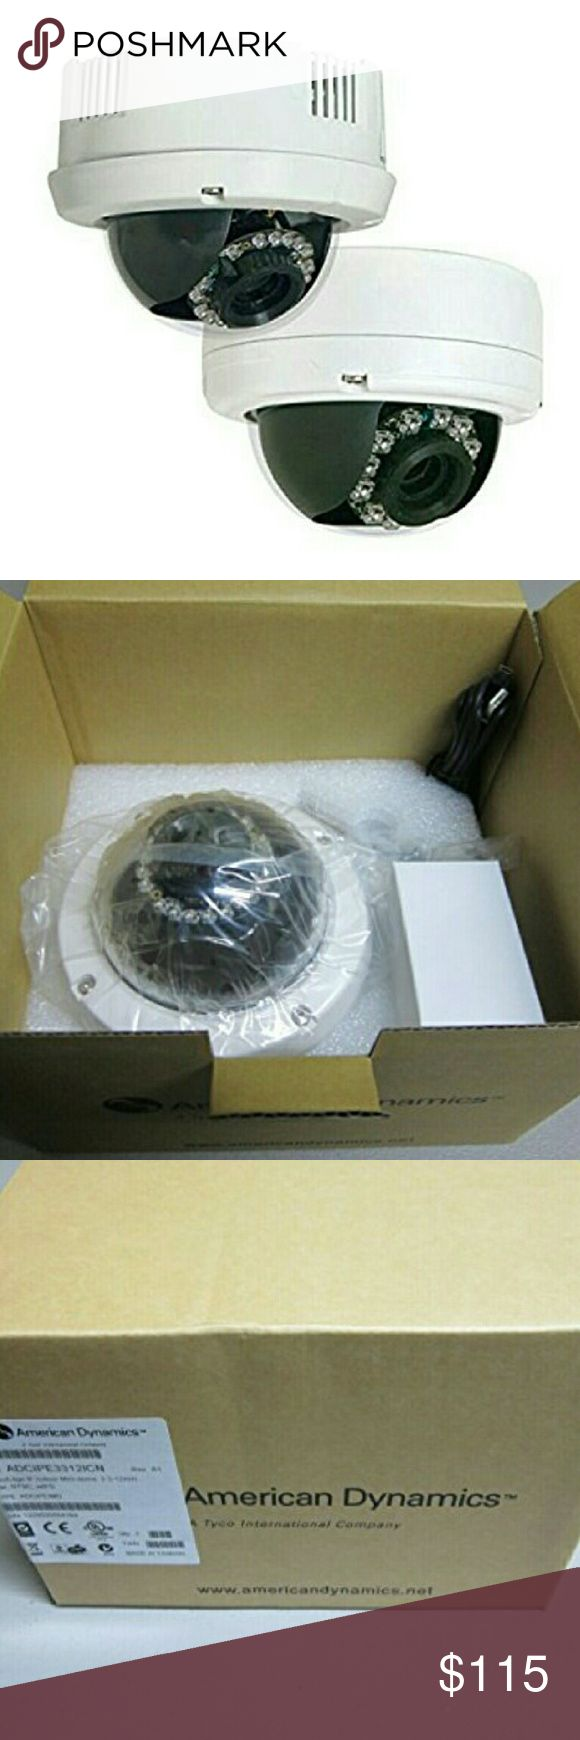 """VideoEdge IP Indor Mini Dome Camera w/pwr suply NWT VideoEdge IP Indoor Mini Dome 3.3-12mm clear NTSC w/power supply fixed camera Its Economical High Quality & Resolution day/night Onboard SD card storage Interface  w/Vandal resistant housing D1 resolution Audio Auto Gain Control Motion Detection Tracking Supports MJPEG/MPEG-4 Compression Technologies Multiple User Access 8 Simultaneous Users Access Security w/Multiple Authority levels IP Address Filtering PAL/NTSC 1/3"""" Sony Super HAD CCD…"""